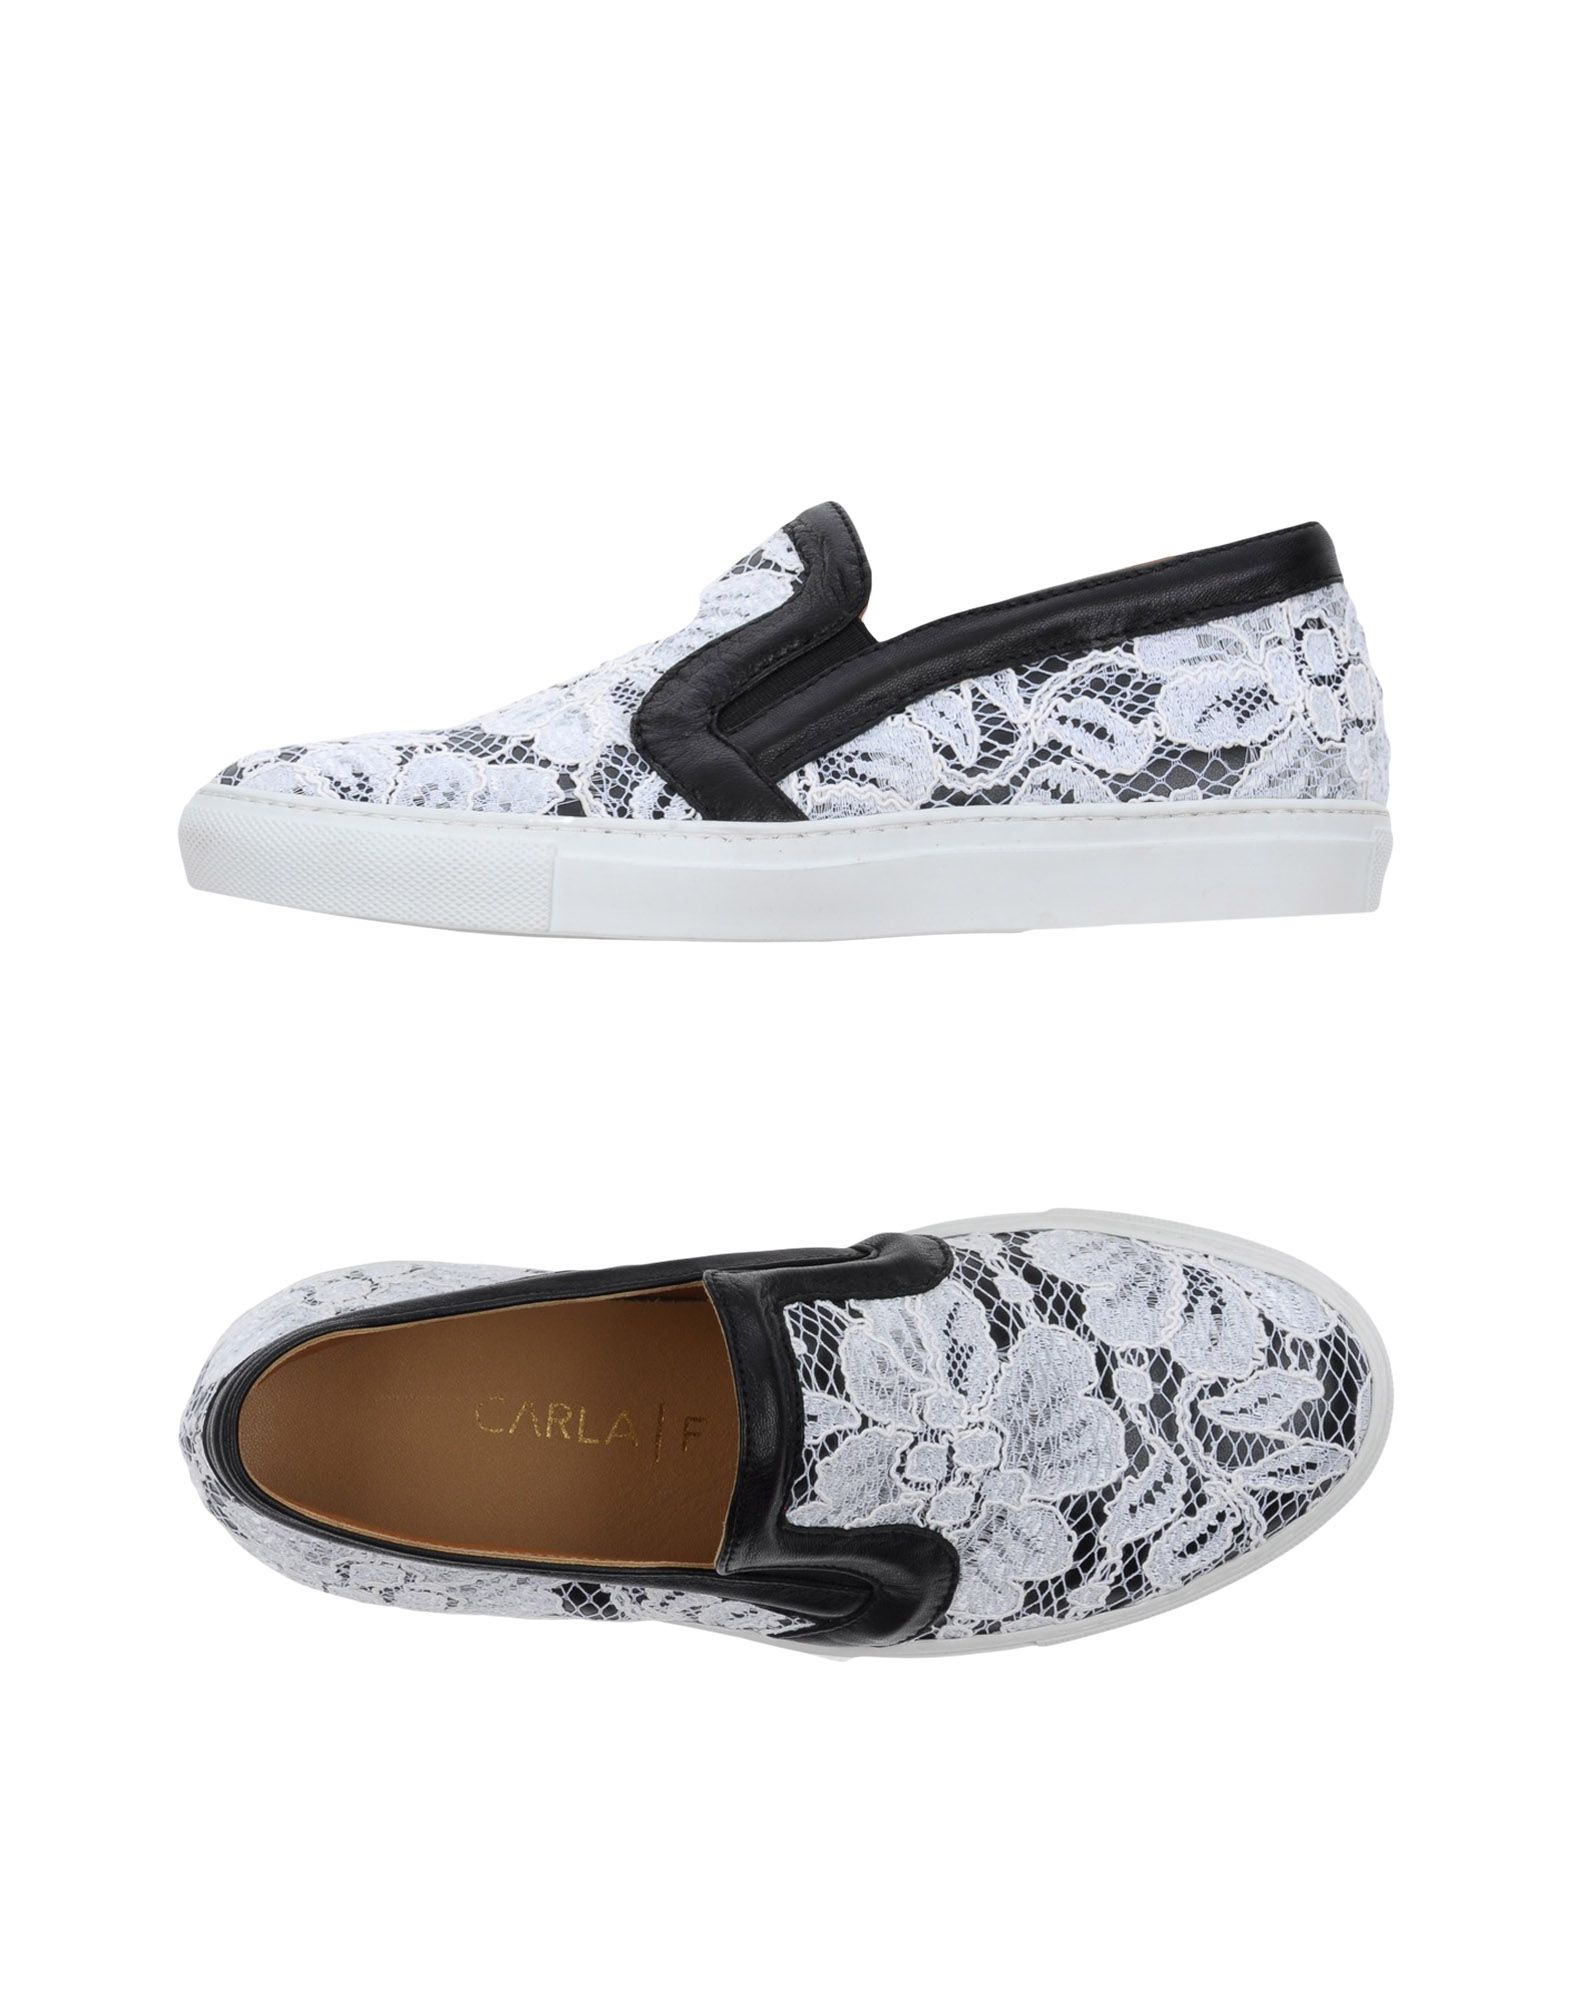 Sneakers Carla F Donna - 11359804IC